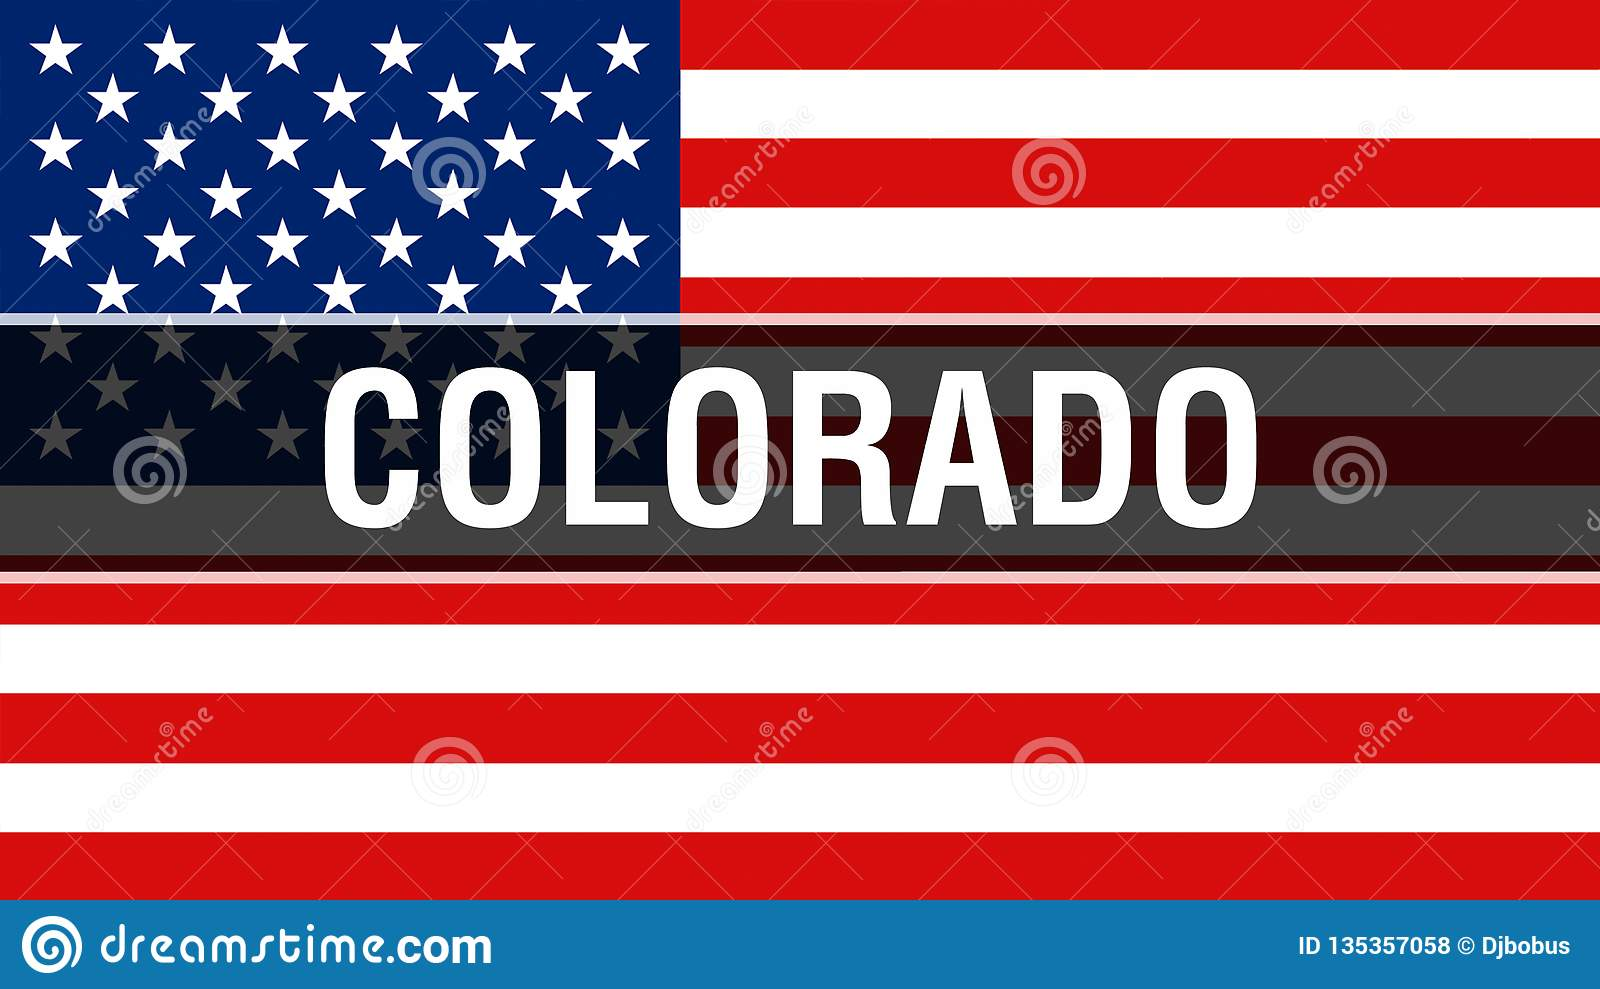 Colorado state on a USA flag background, 3D rendering. United States of America flag waving in the wind. Proud American Flag